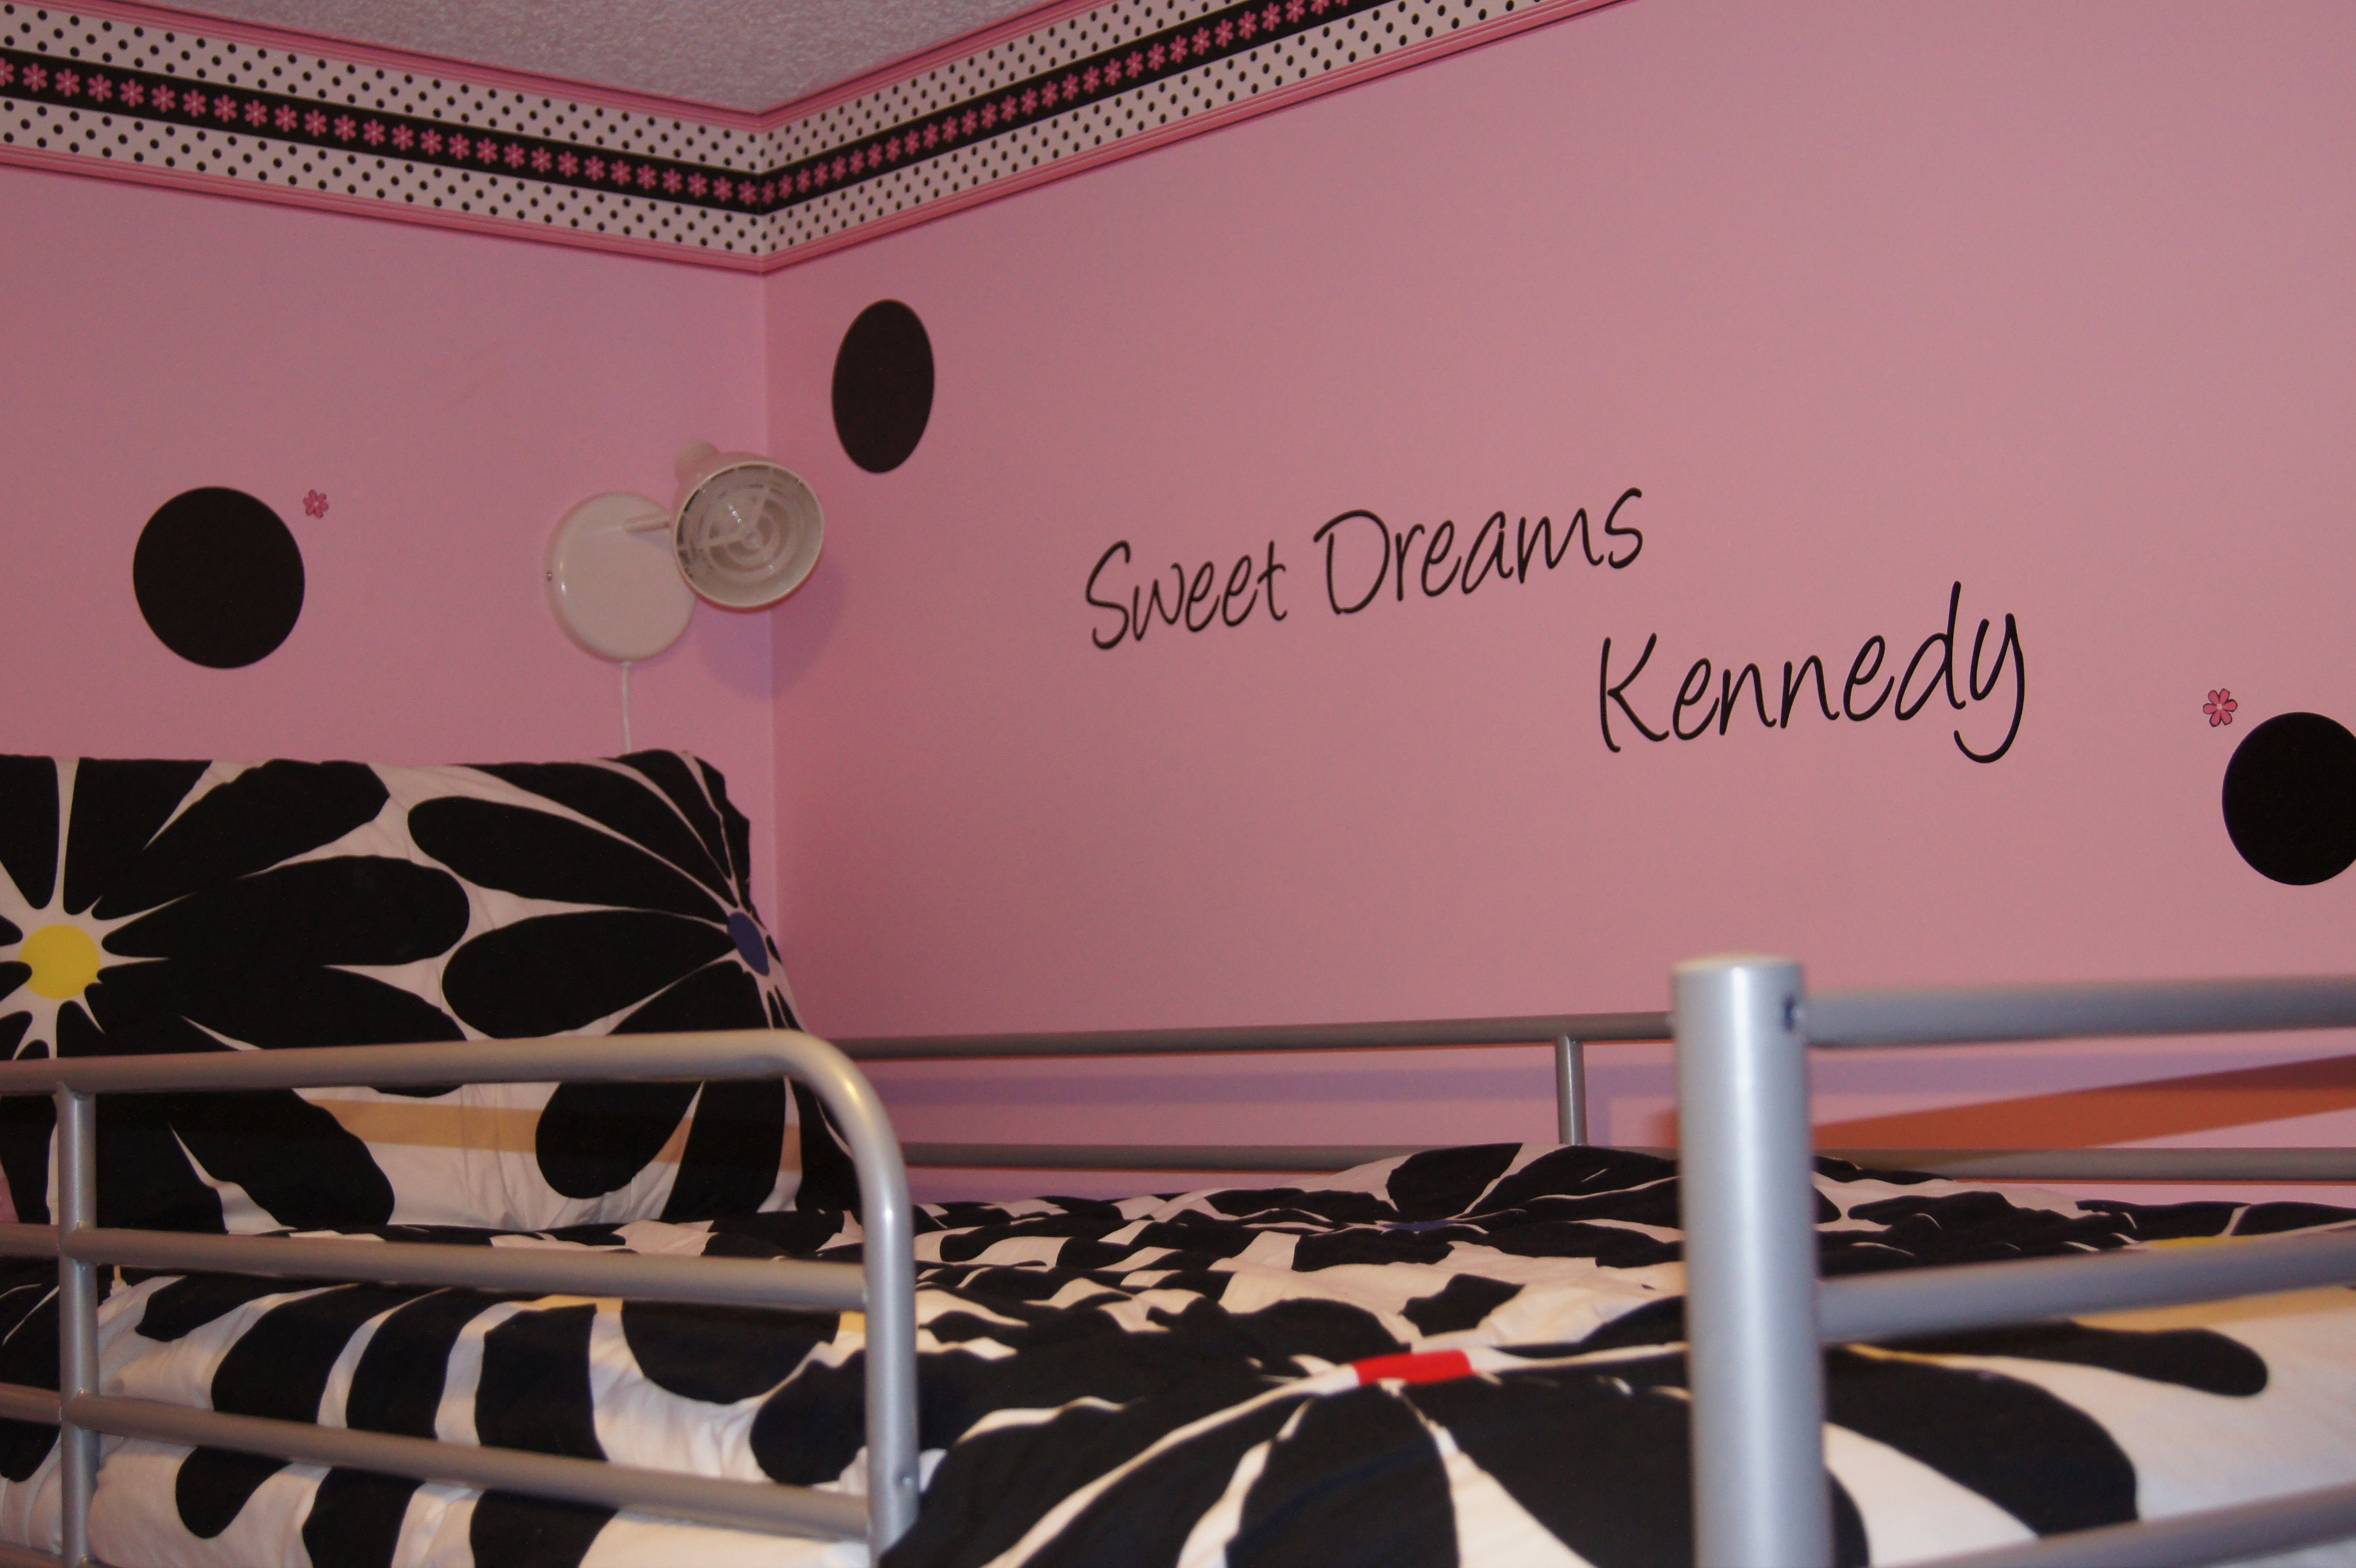 Wall Decal: Polka dots are so much easier to do with vinyl than painting them and I love the font with this quote.